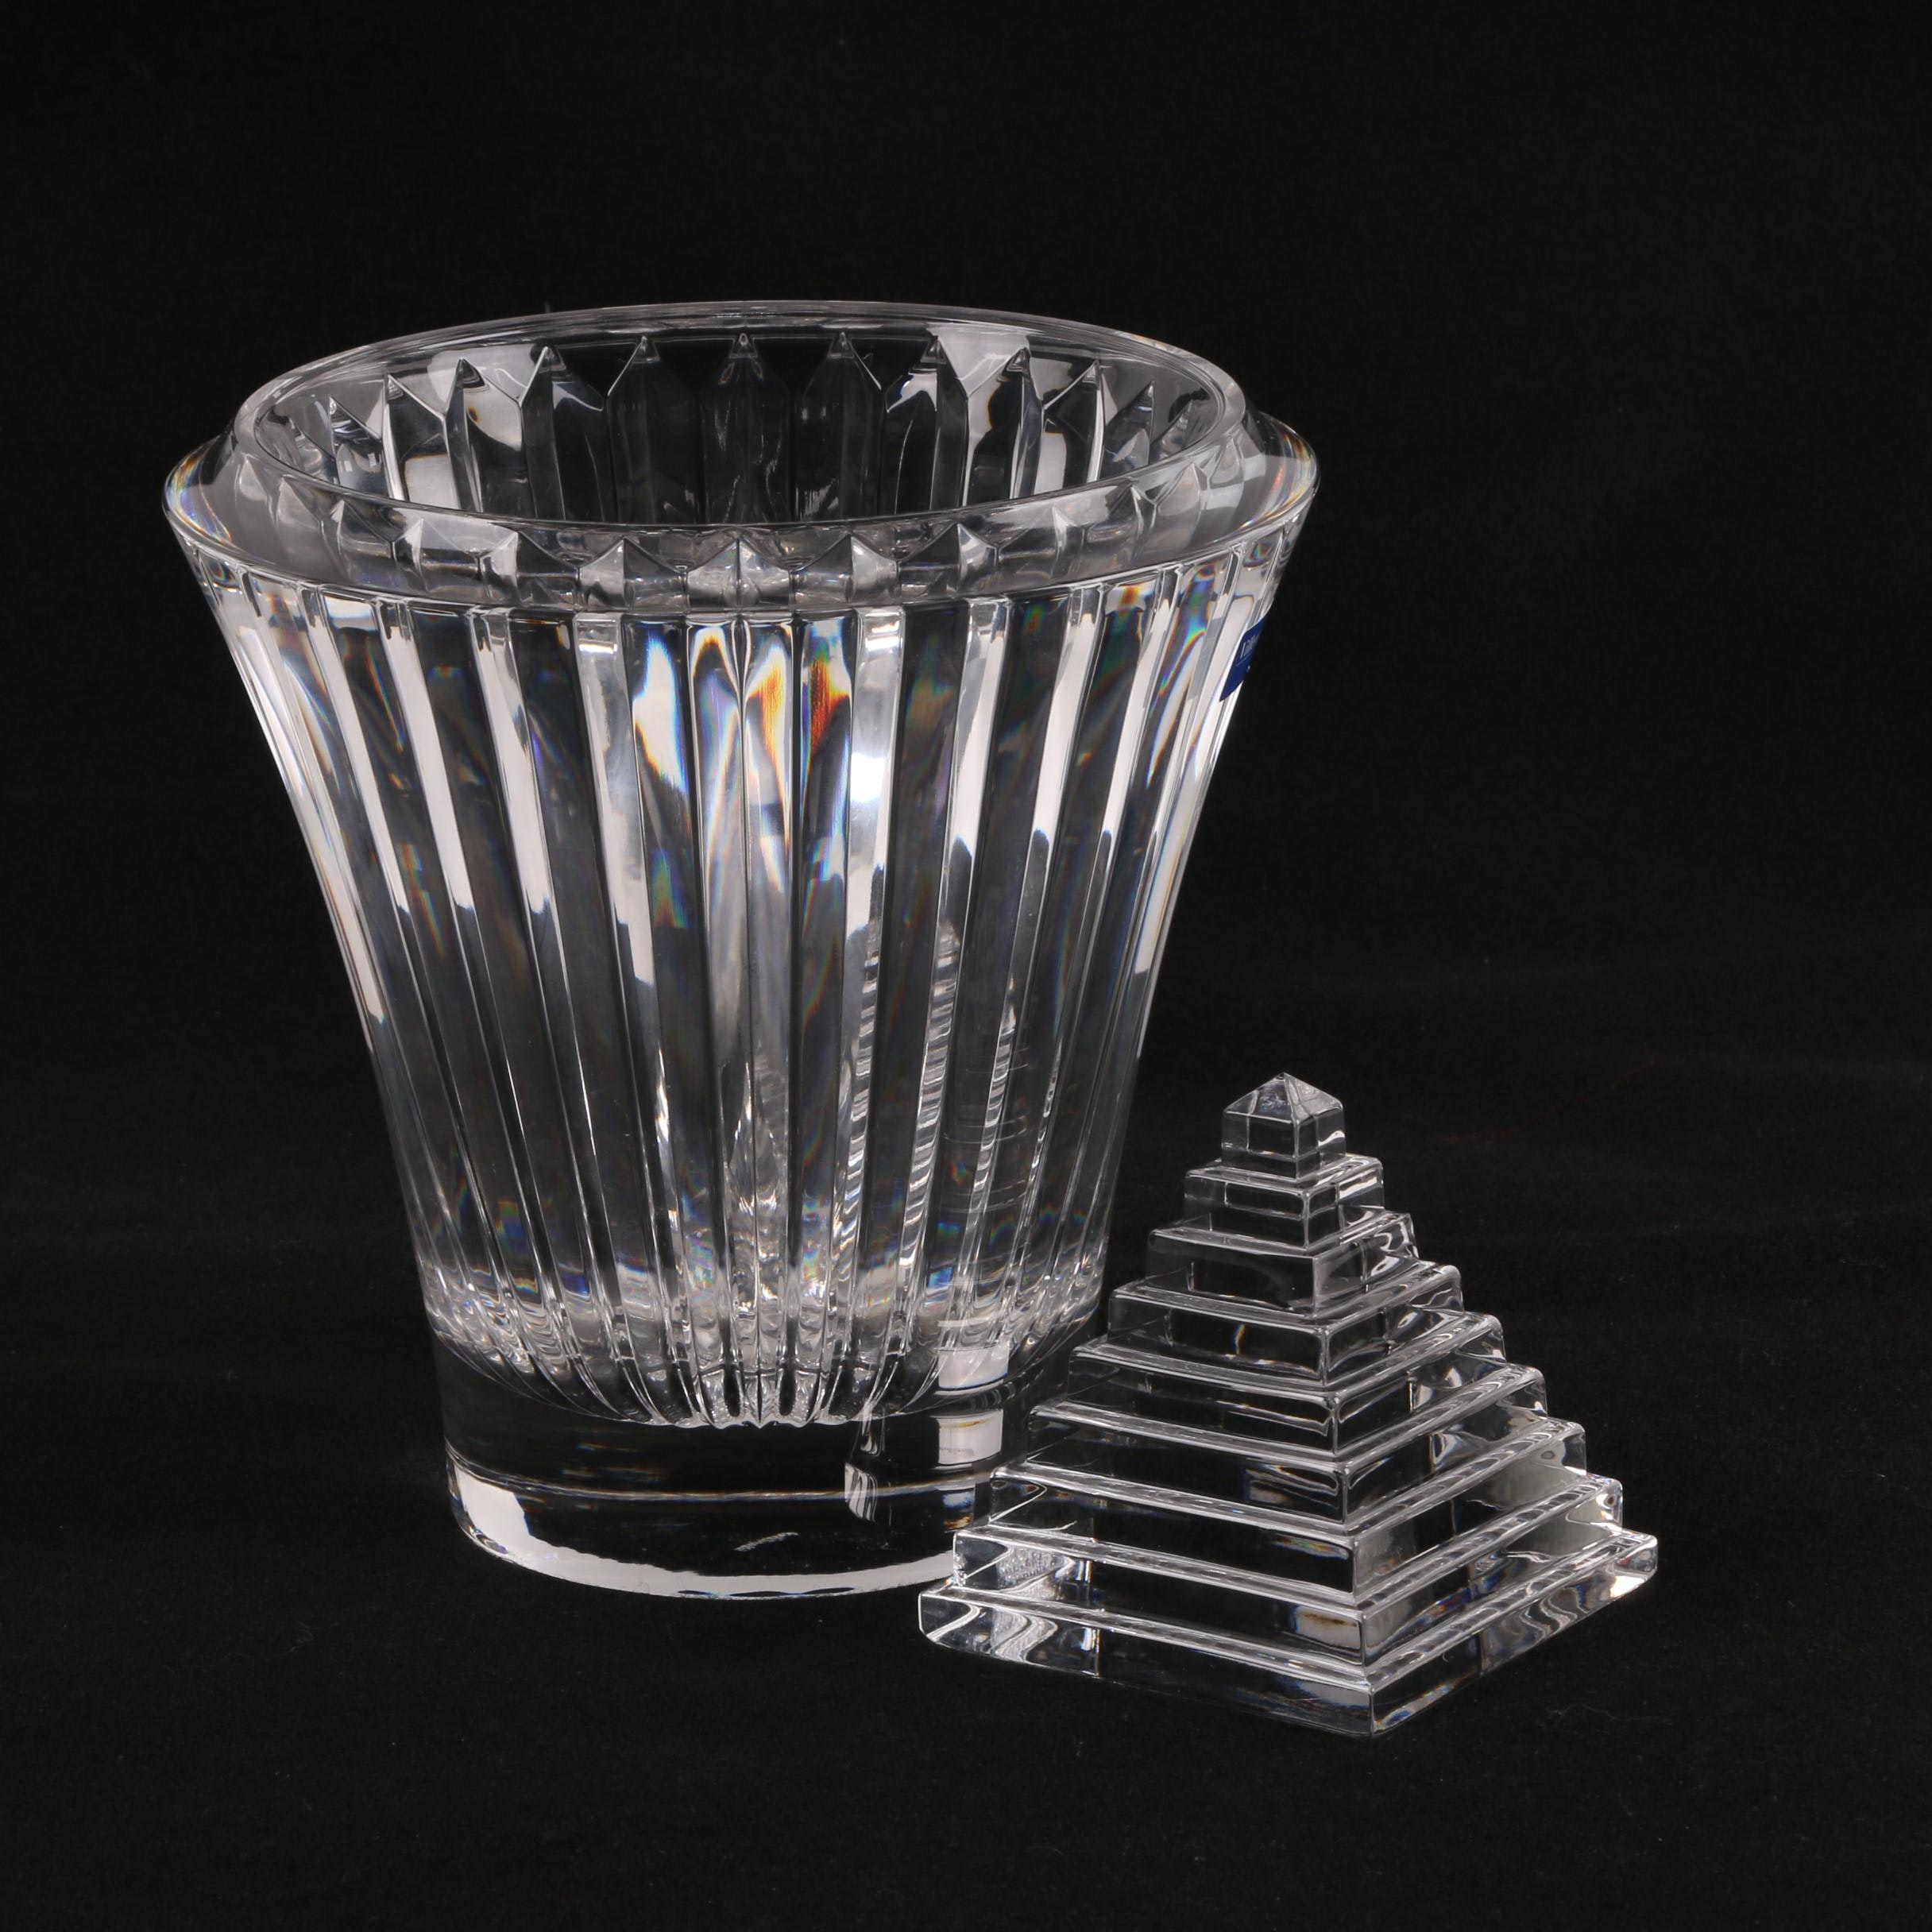 Villeroy & Boch Crystal Flower Vase and Pyramid Paperweight